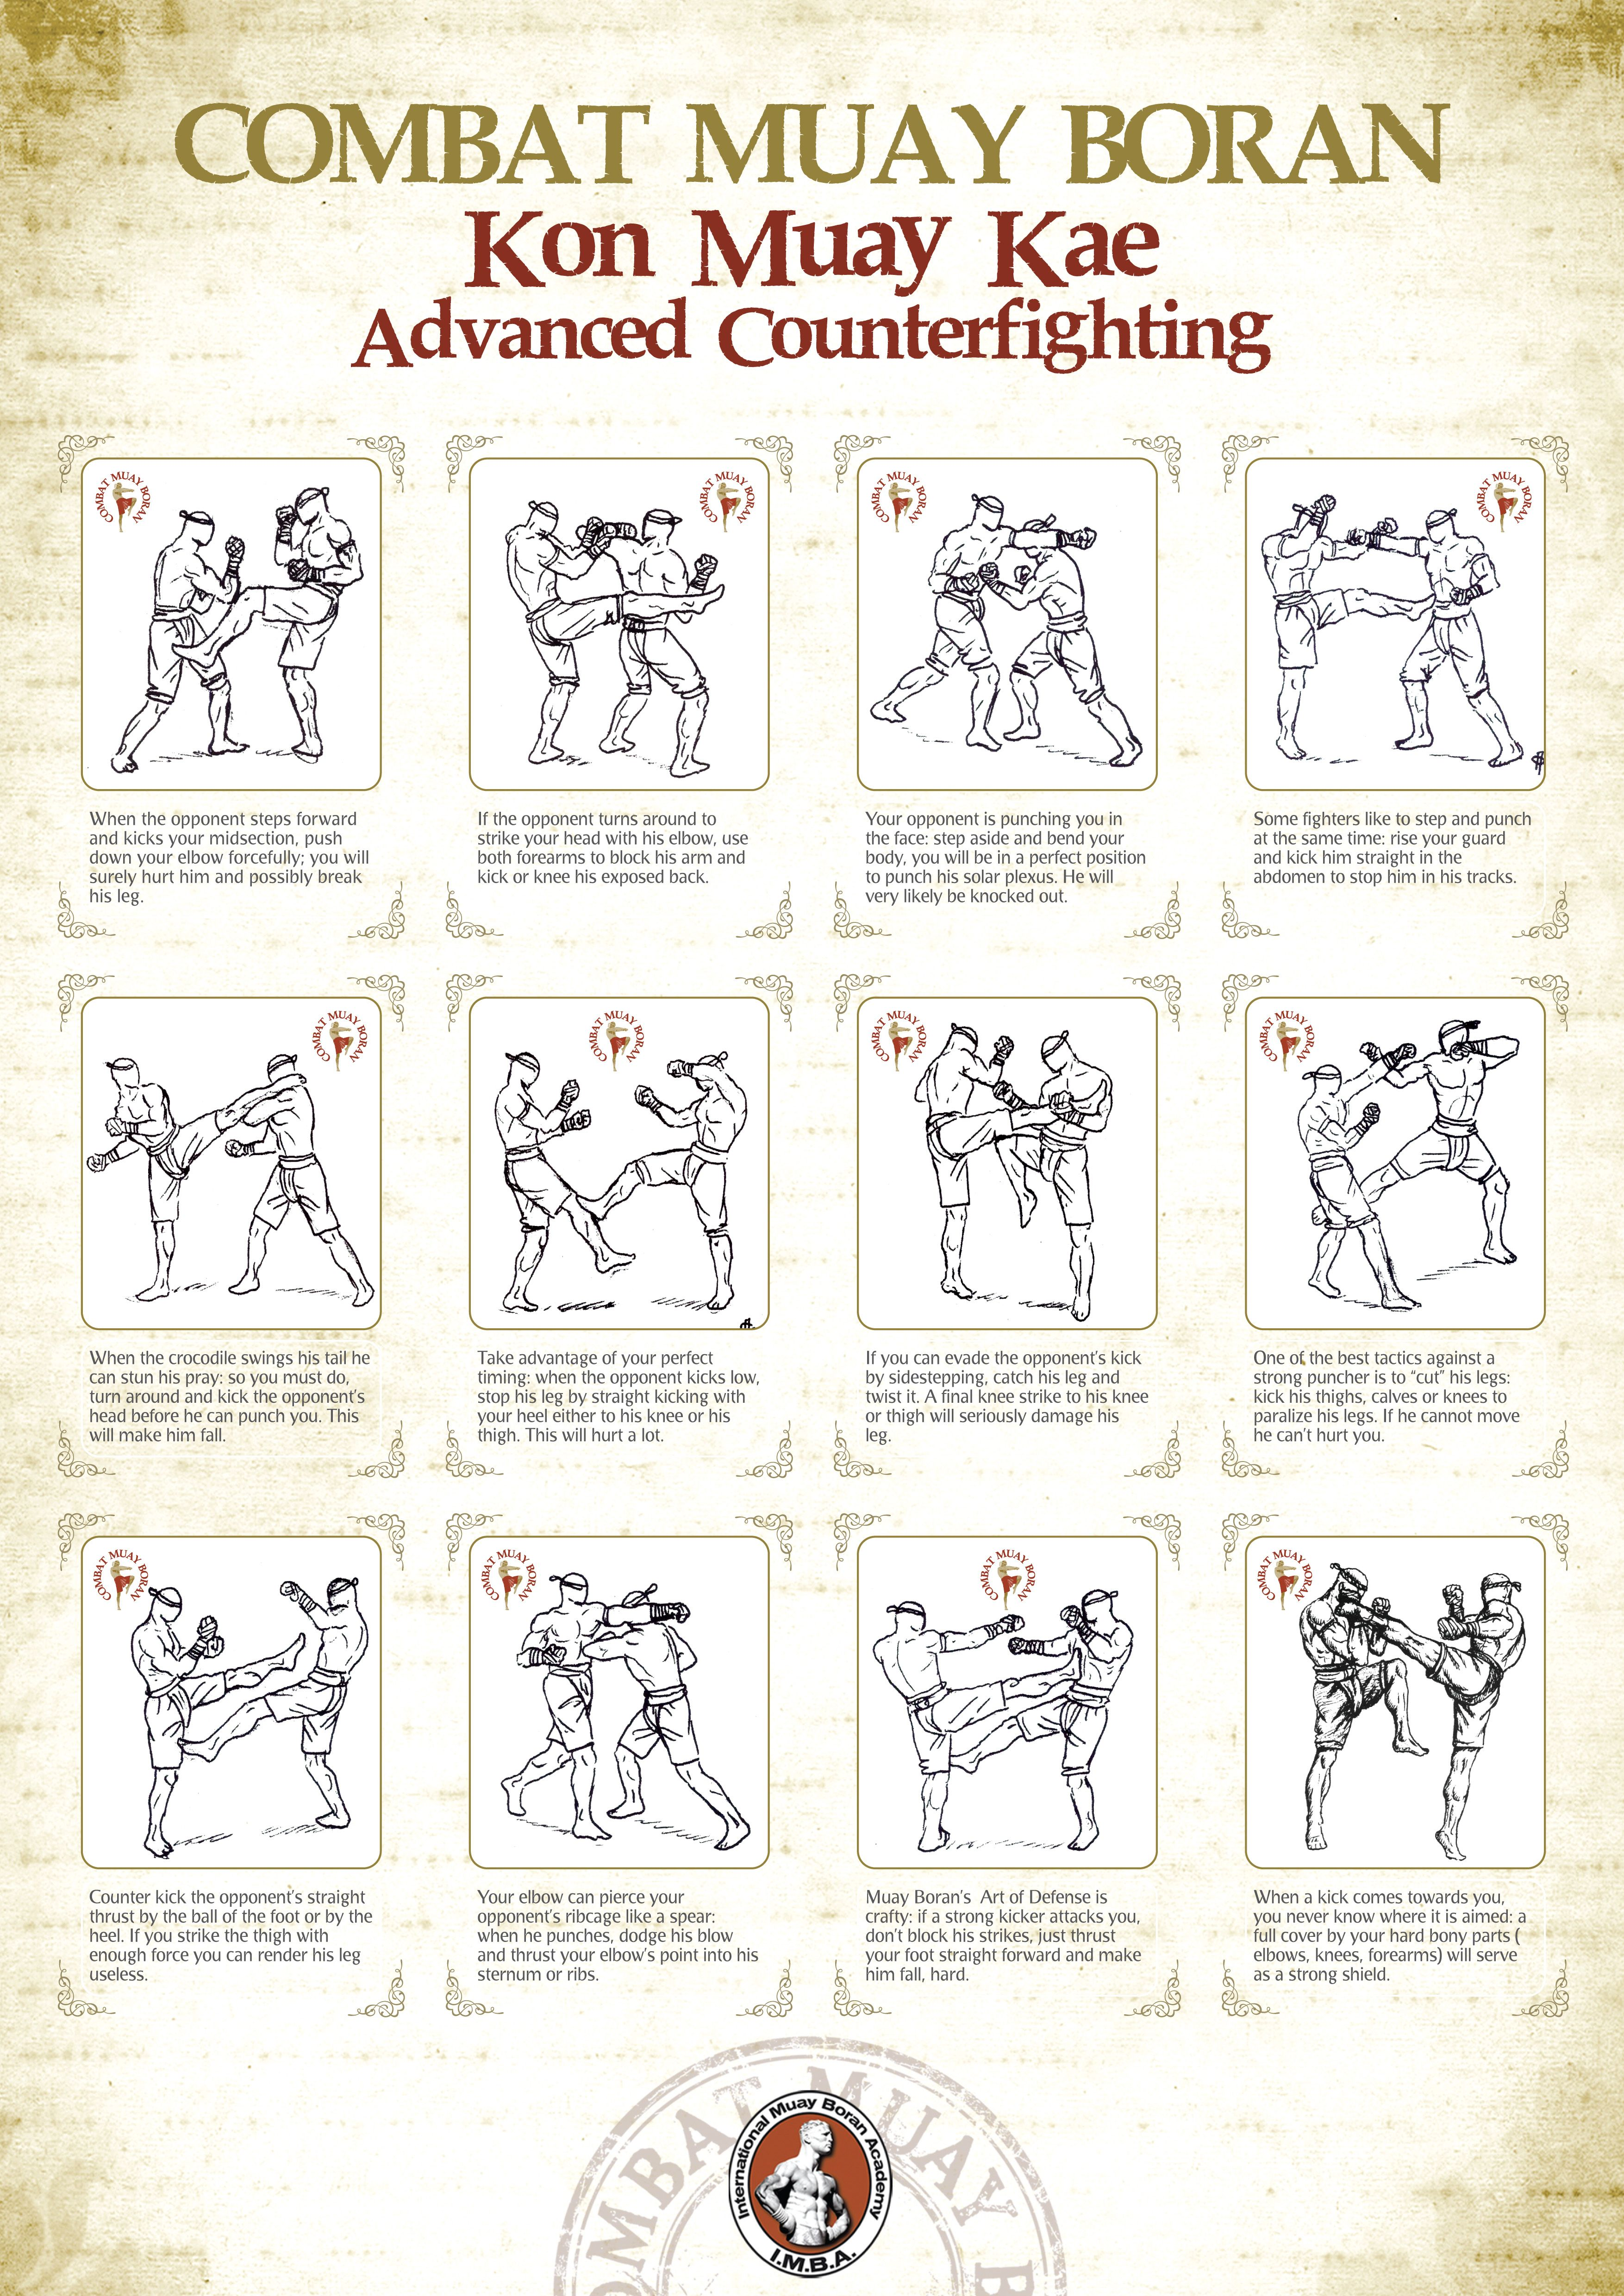 Combat Muay Boran Poster Imba Martial Arts Techniques Self Defense Martial Arts Martial Arts Workout